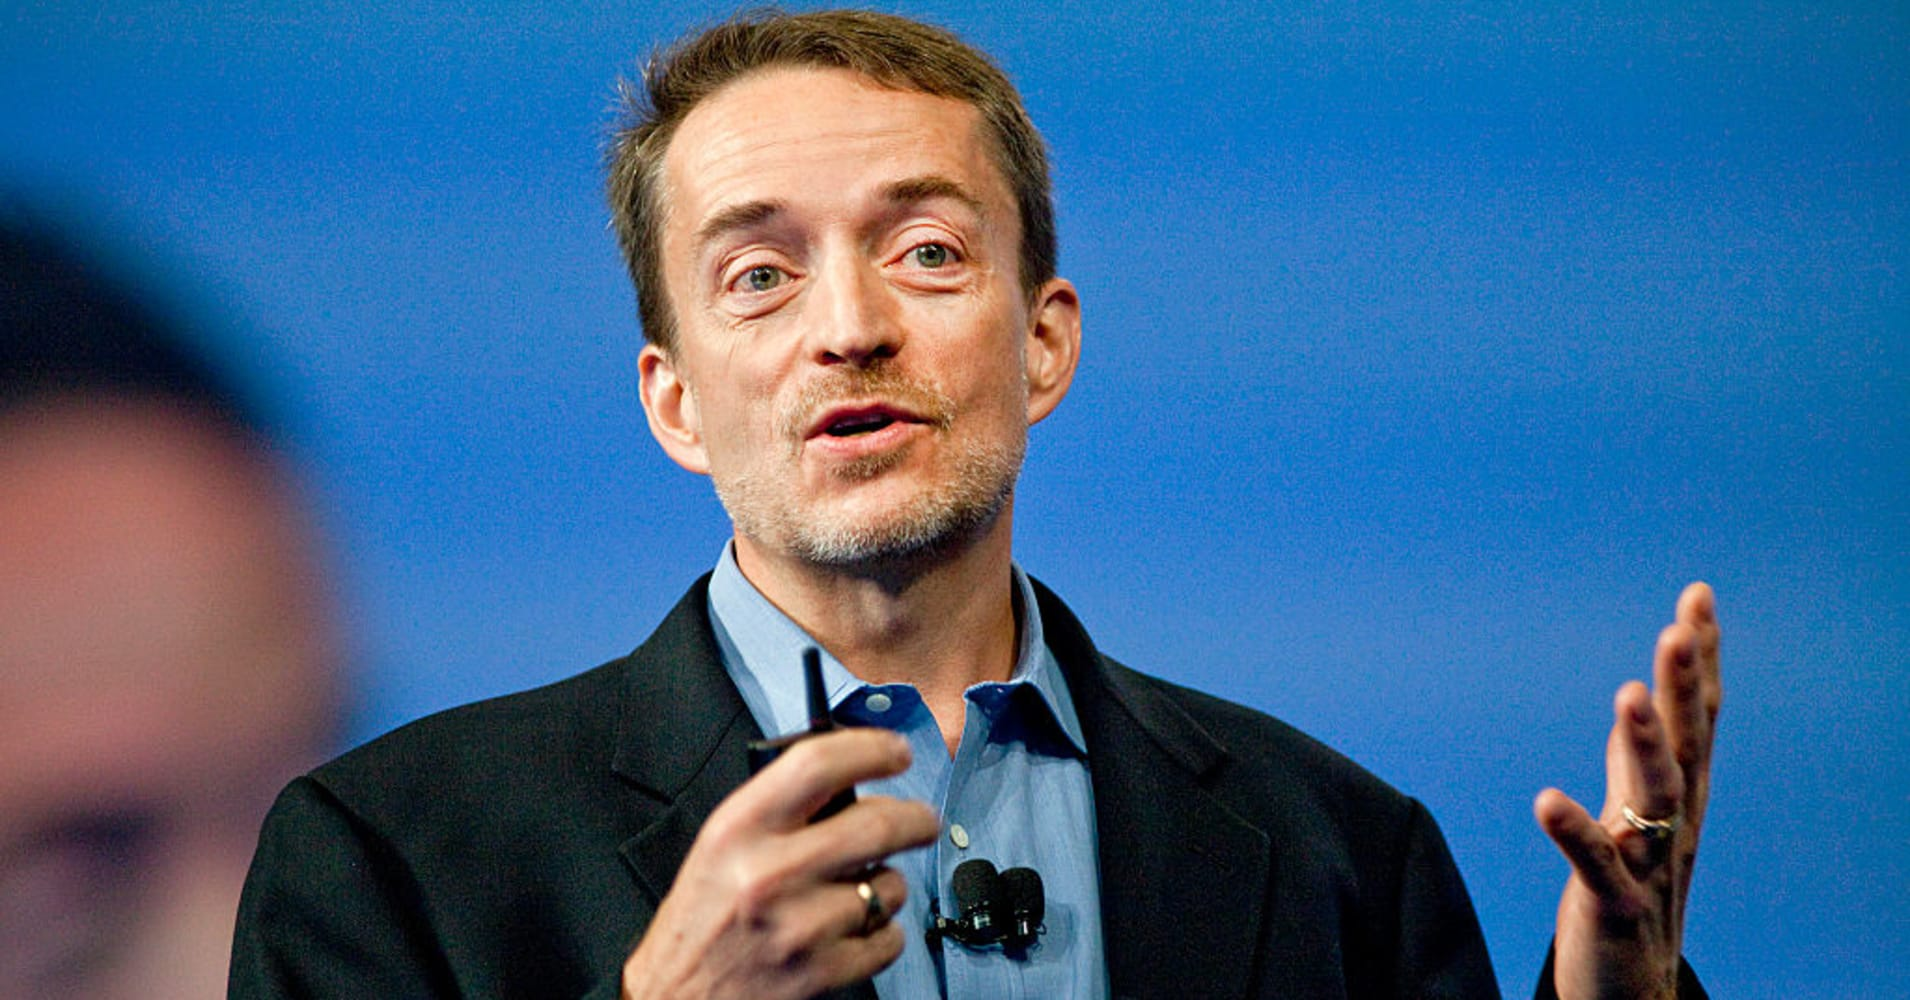 VMware to buy Carbon Black & Pivotal for $4 8B